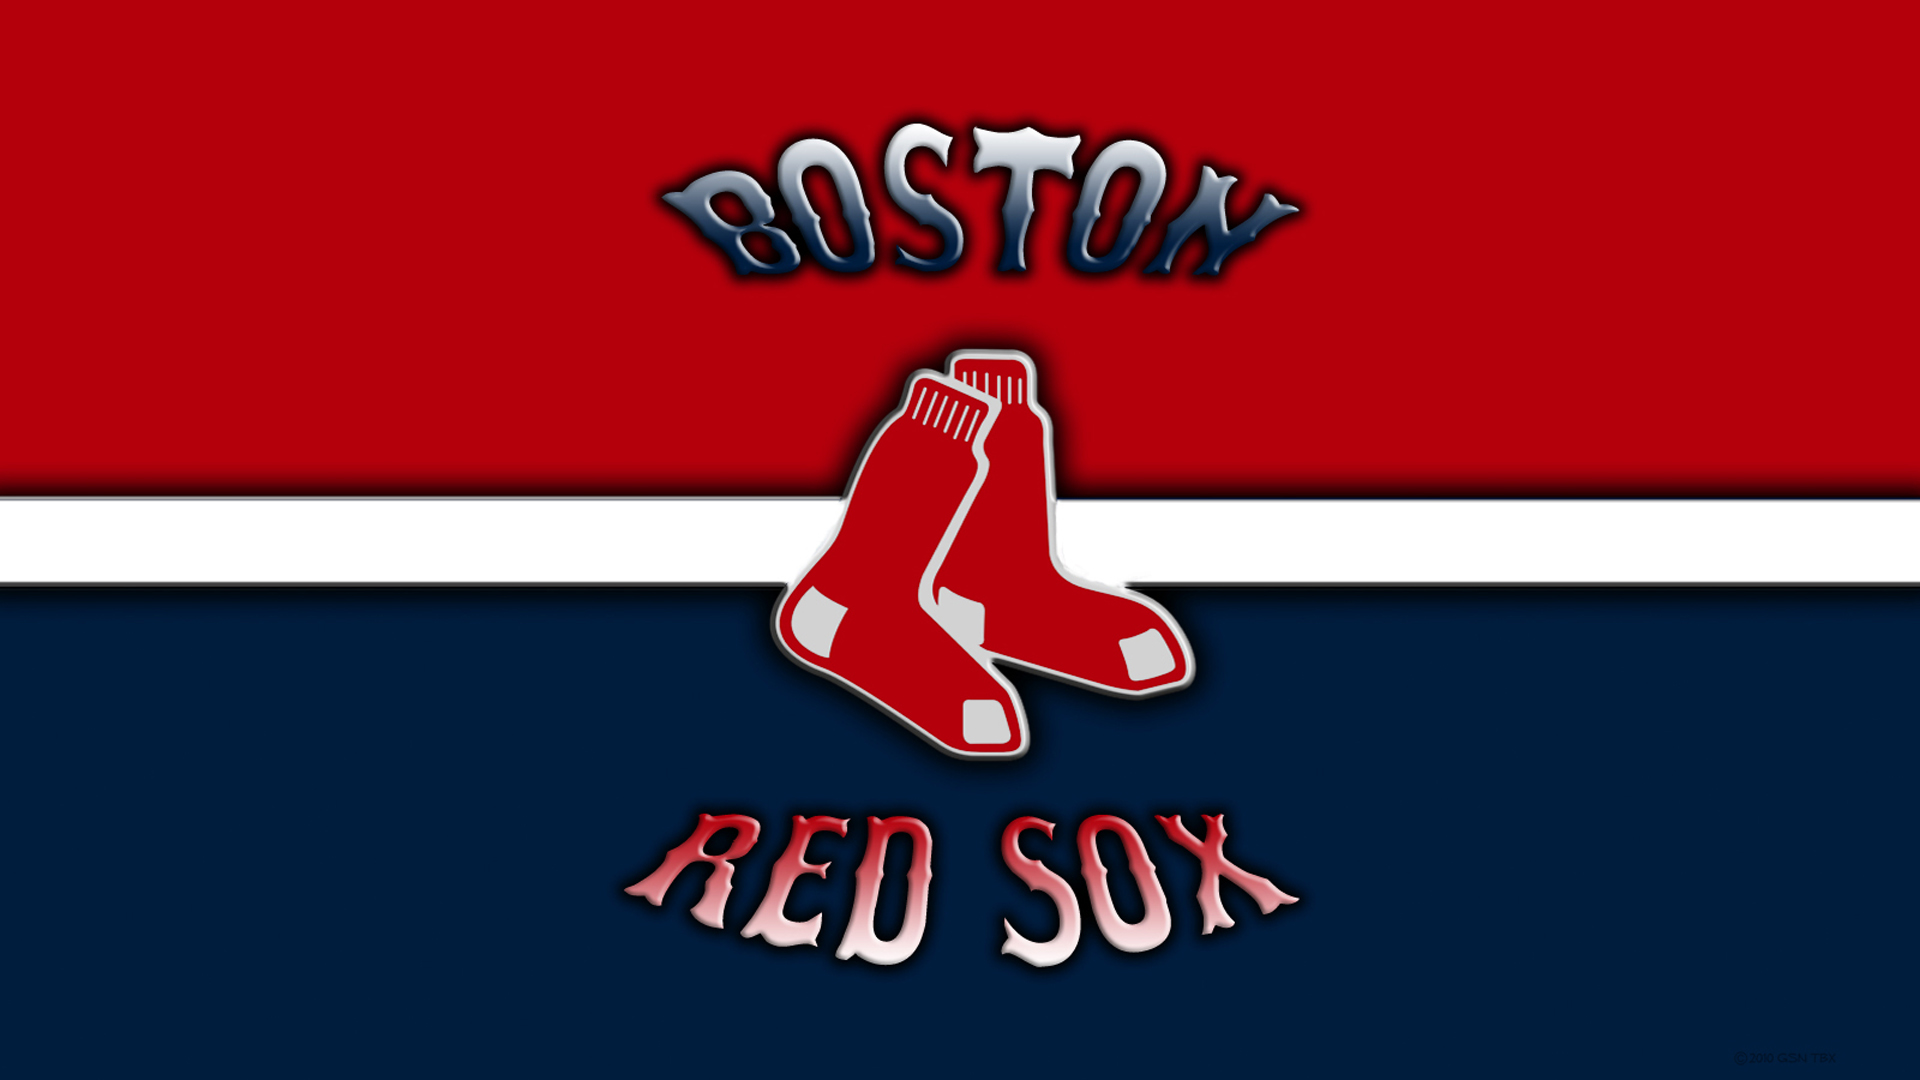 boston red sox wallpaper for ipad widescreen background wallpaper 1920x1080